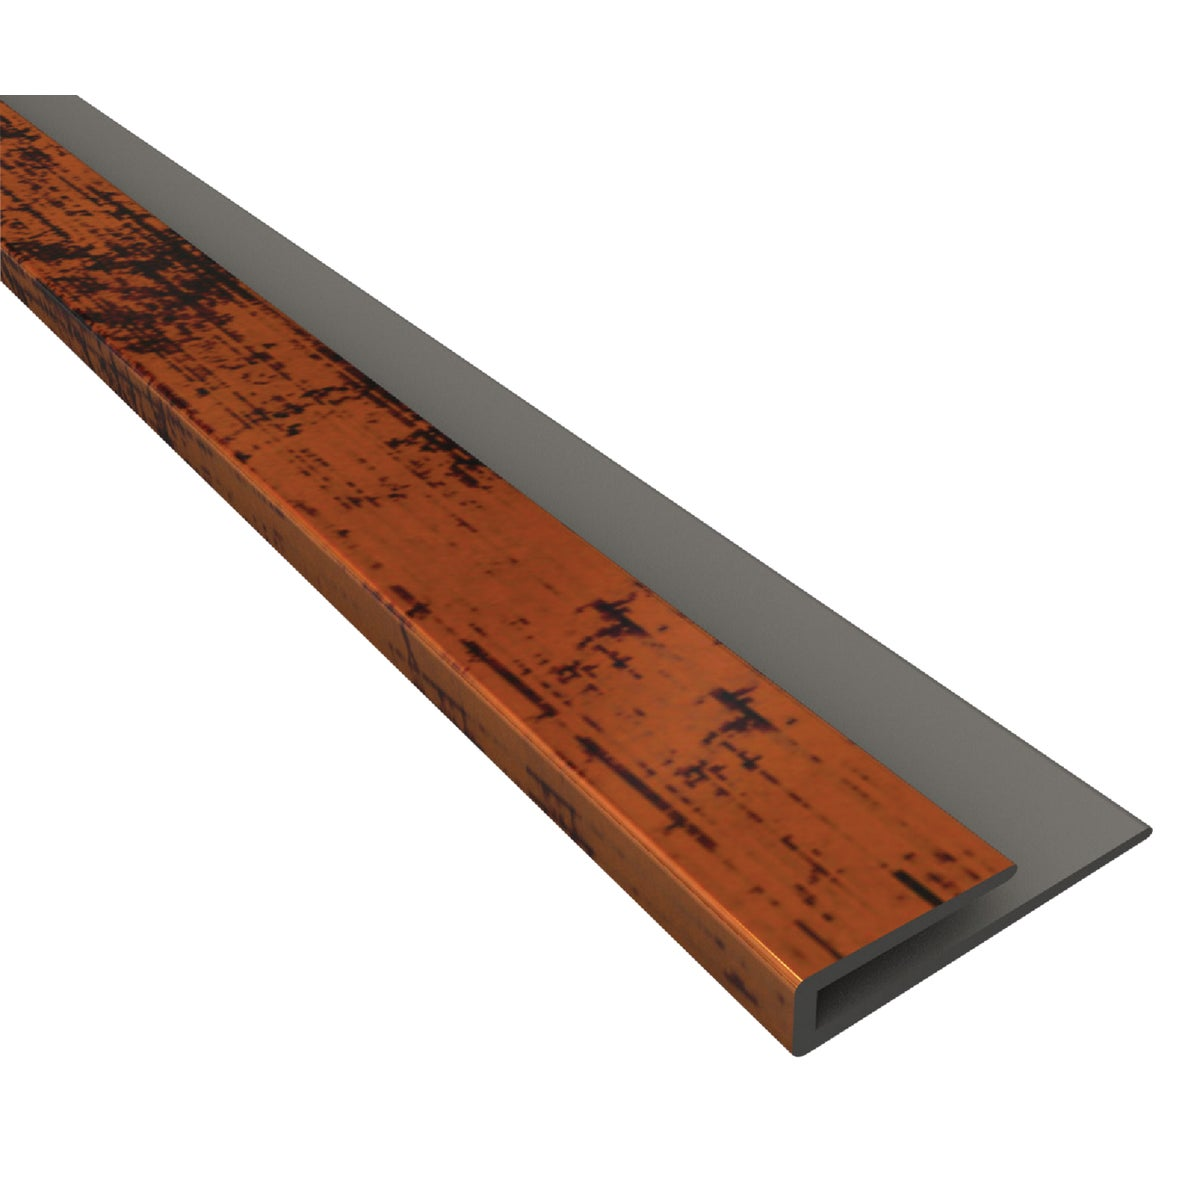 MOON COPPER EDGE J TRIM - 923-18 by Acp